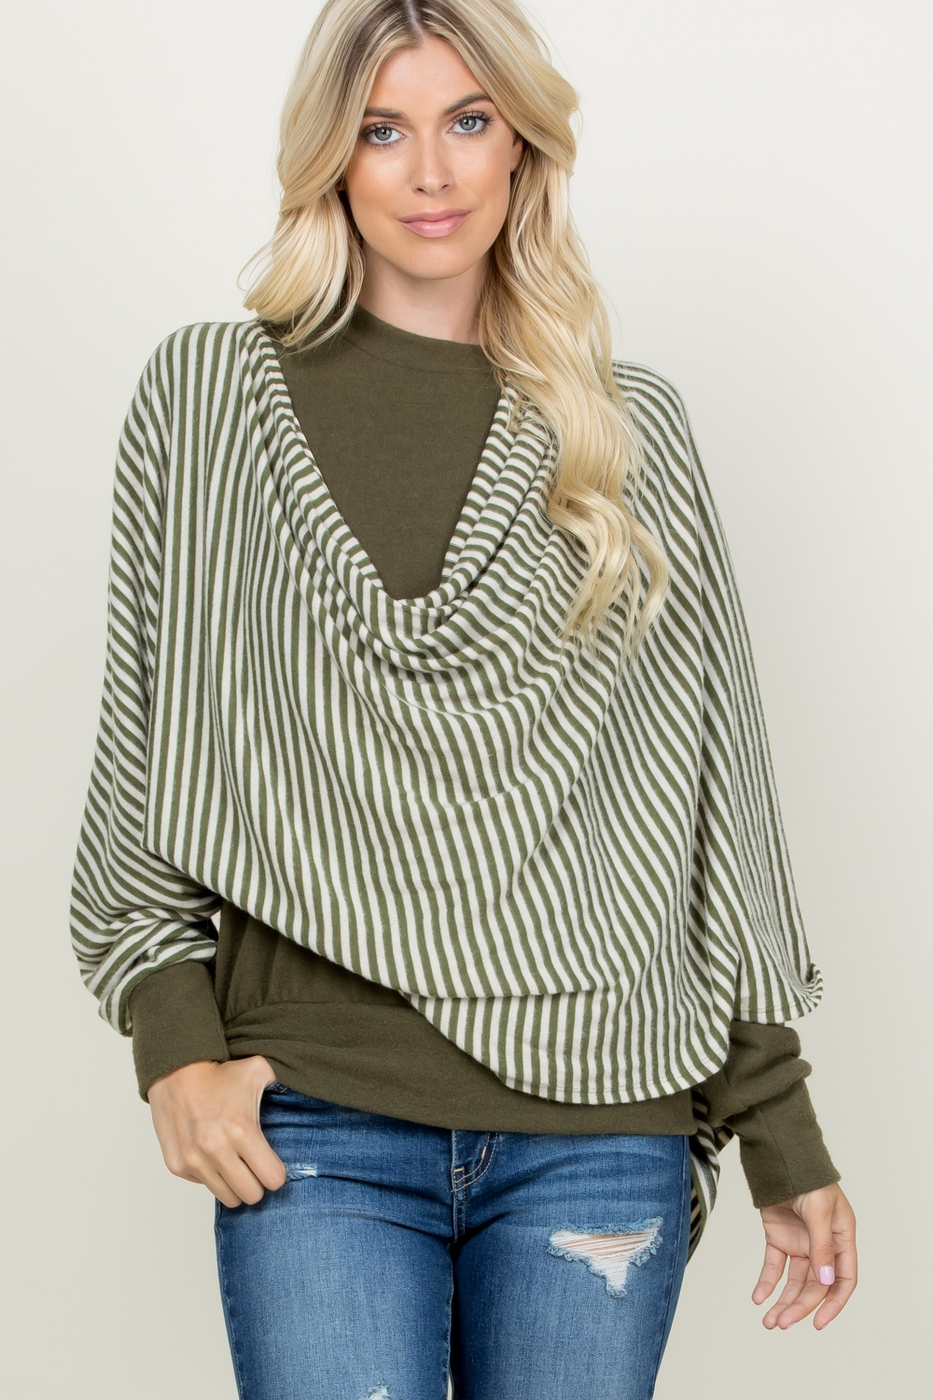 SOLID TOP WITH ATTACHED STRIPE SHAWL - orangeshine.com